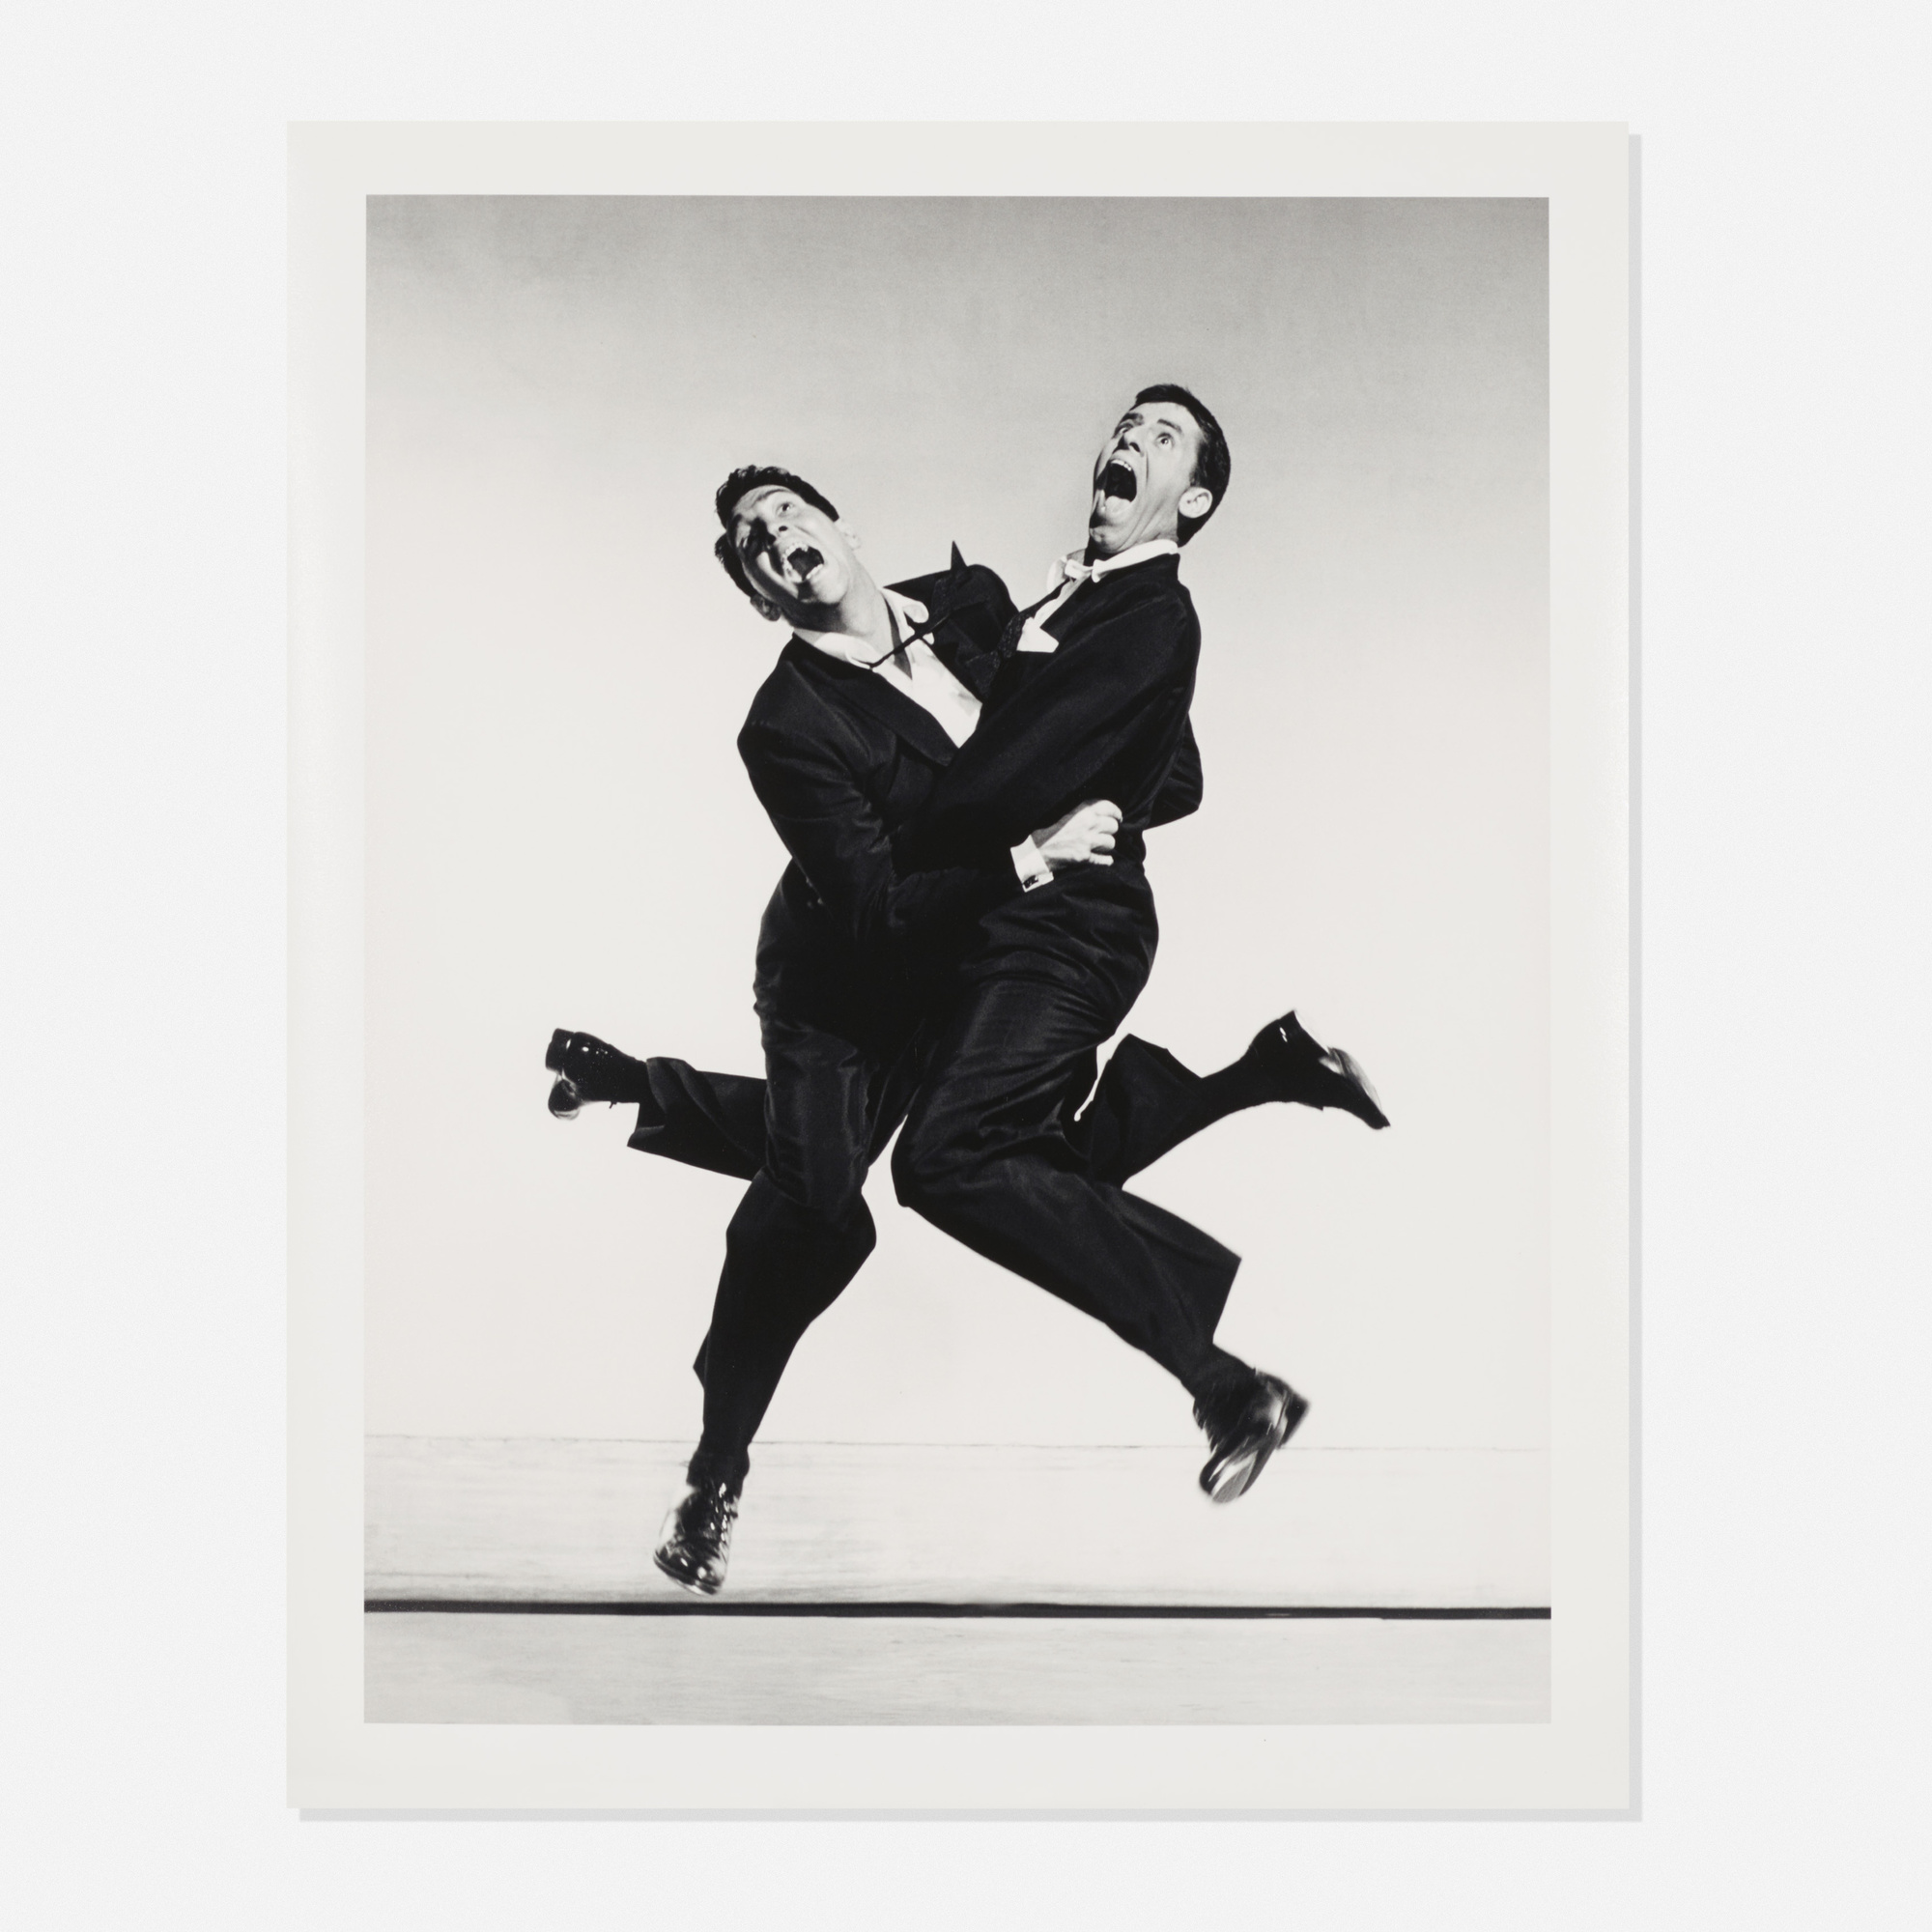 275: Philippe Halsman / Dean Martin and Jerry Lewis (1 of 1)